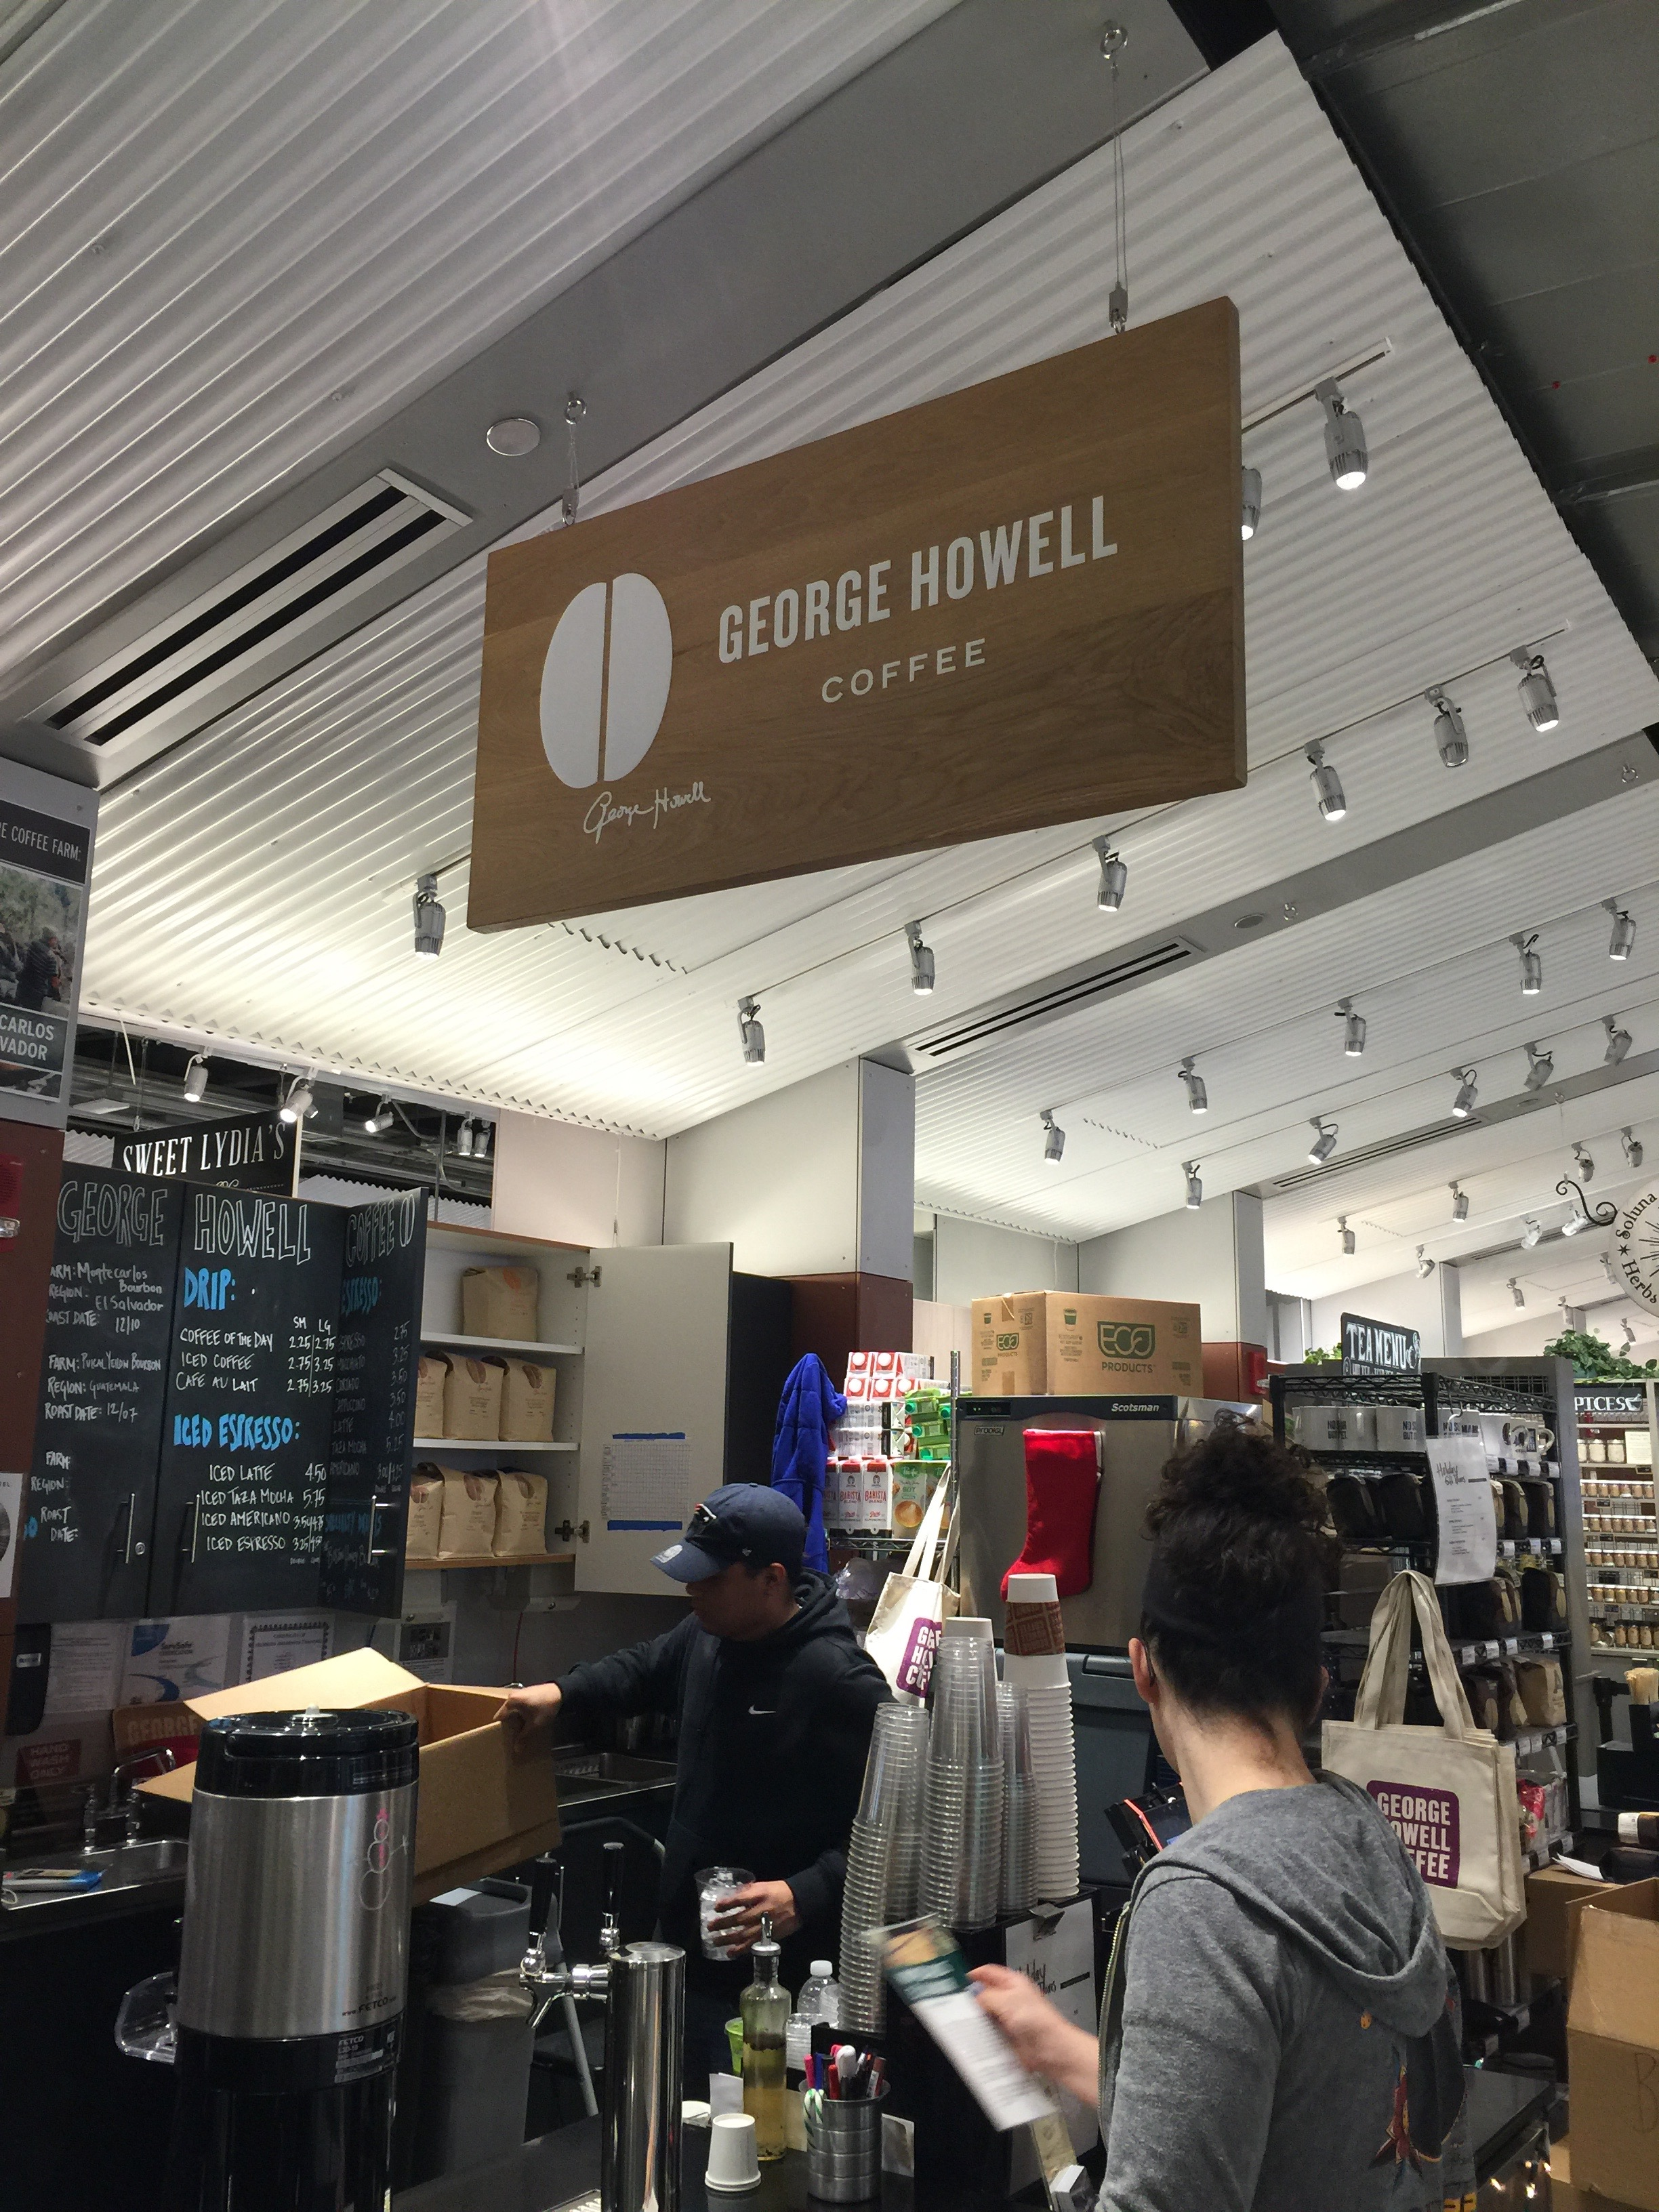 George Howell coffee - the place to get your coffee geek on in a good way